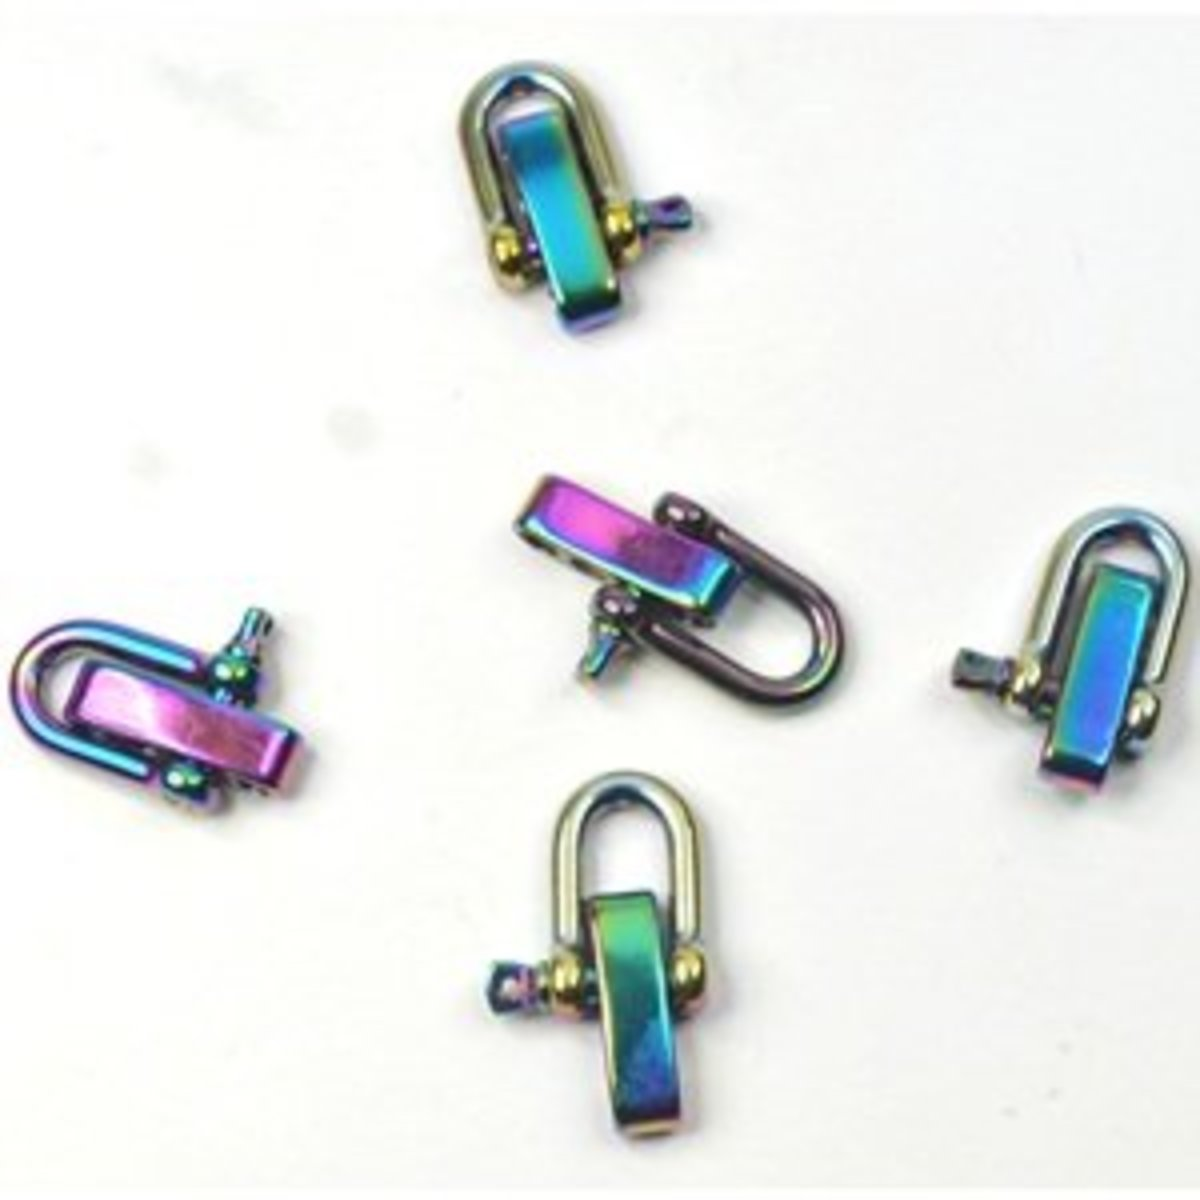 If you can find them these anodized D shackles look really cool.